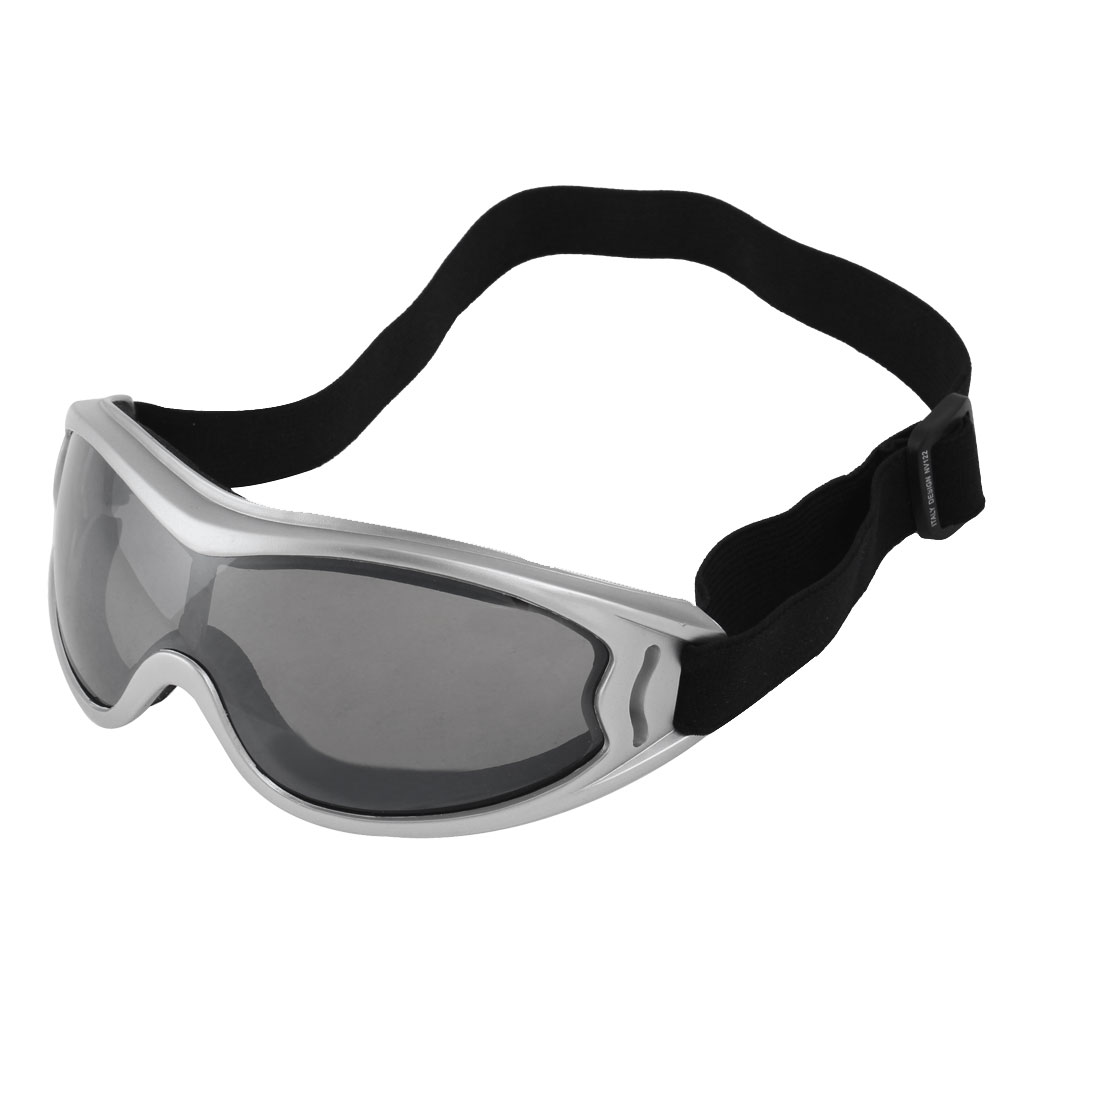 Black Lens Ski Snowboard Racing Motorcycle Sports Goggles Safety Glasses